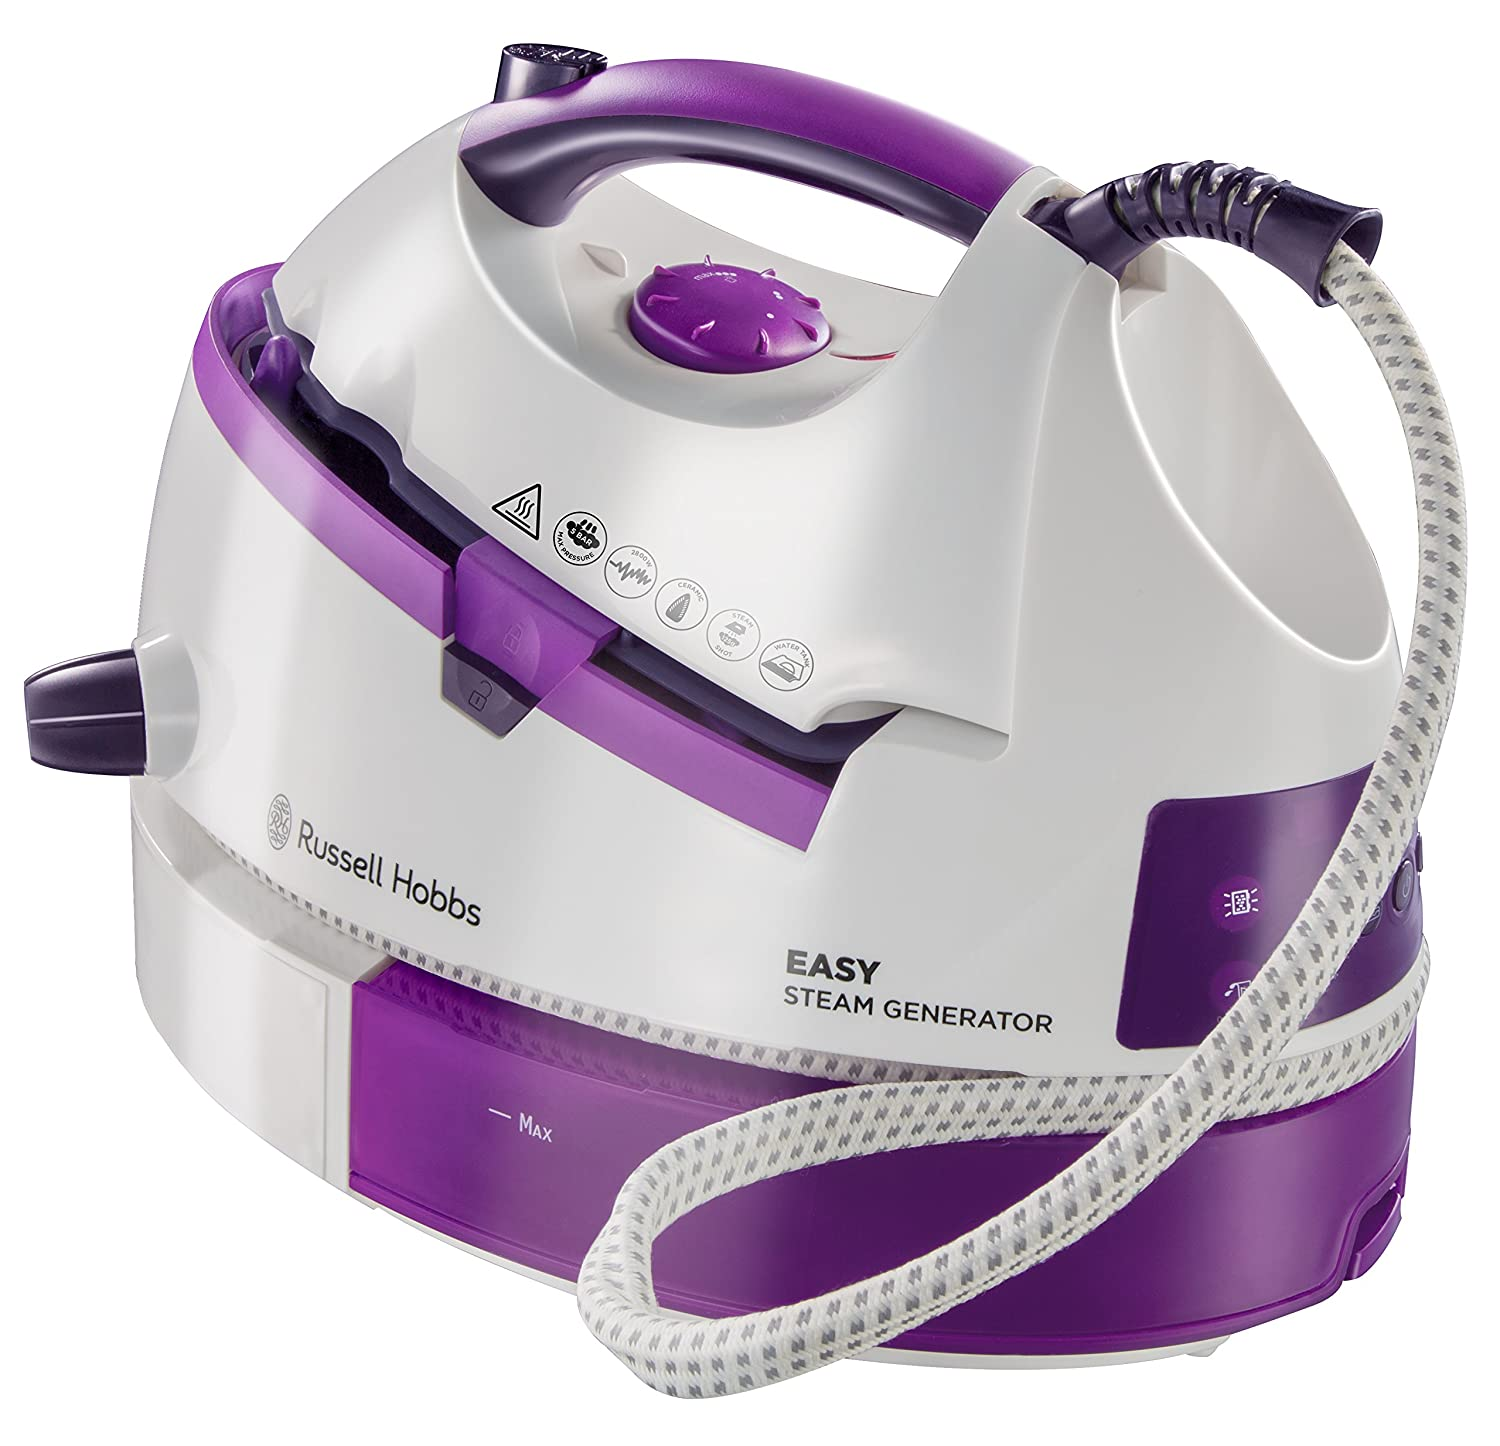 Russell Hobbs Easy Steam Generator Iron 2800 W White and